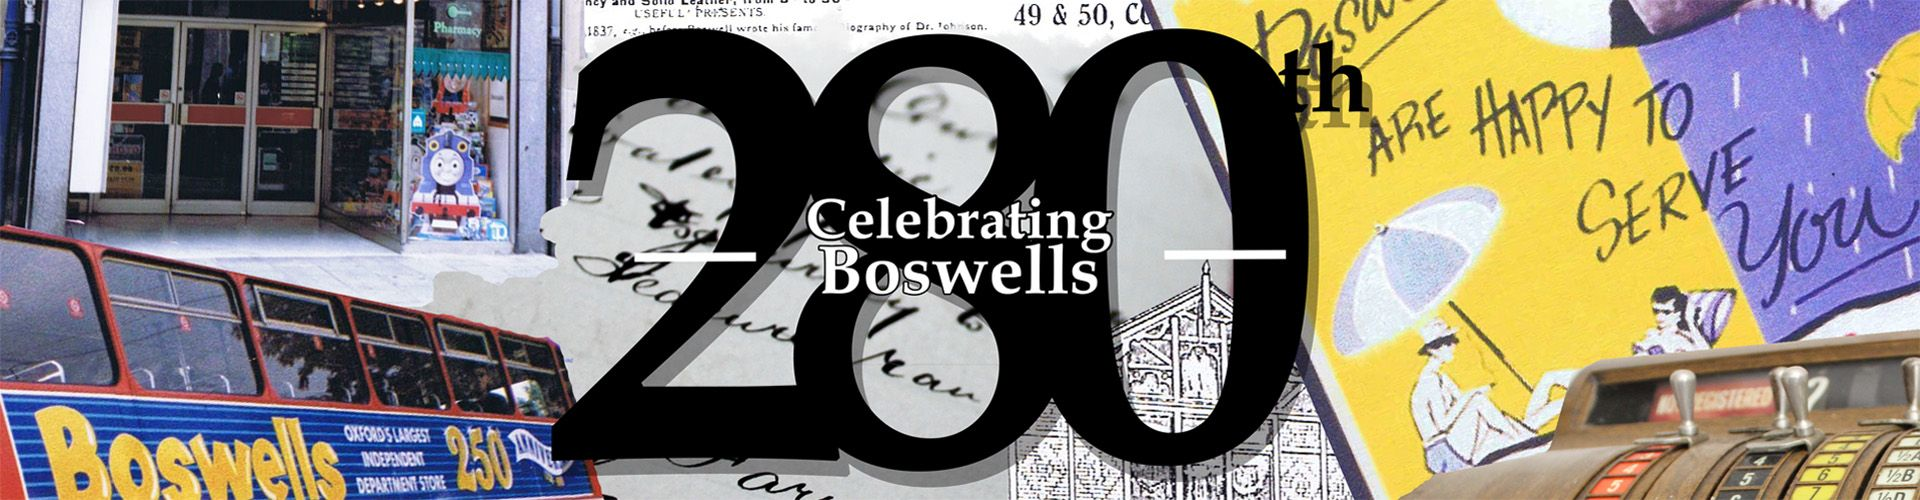 Celebrating 280 Years Of Boswells Weekend